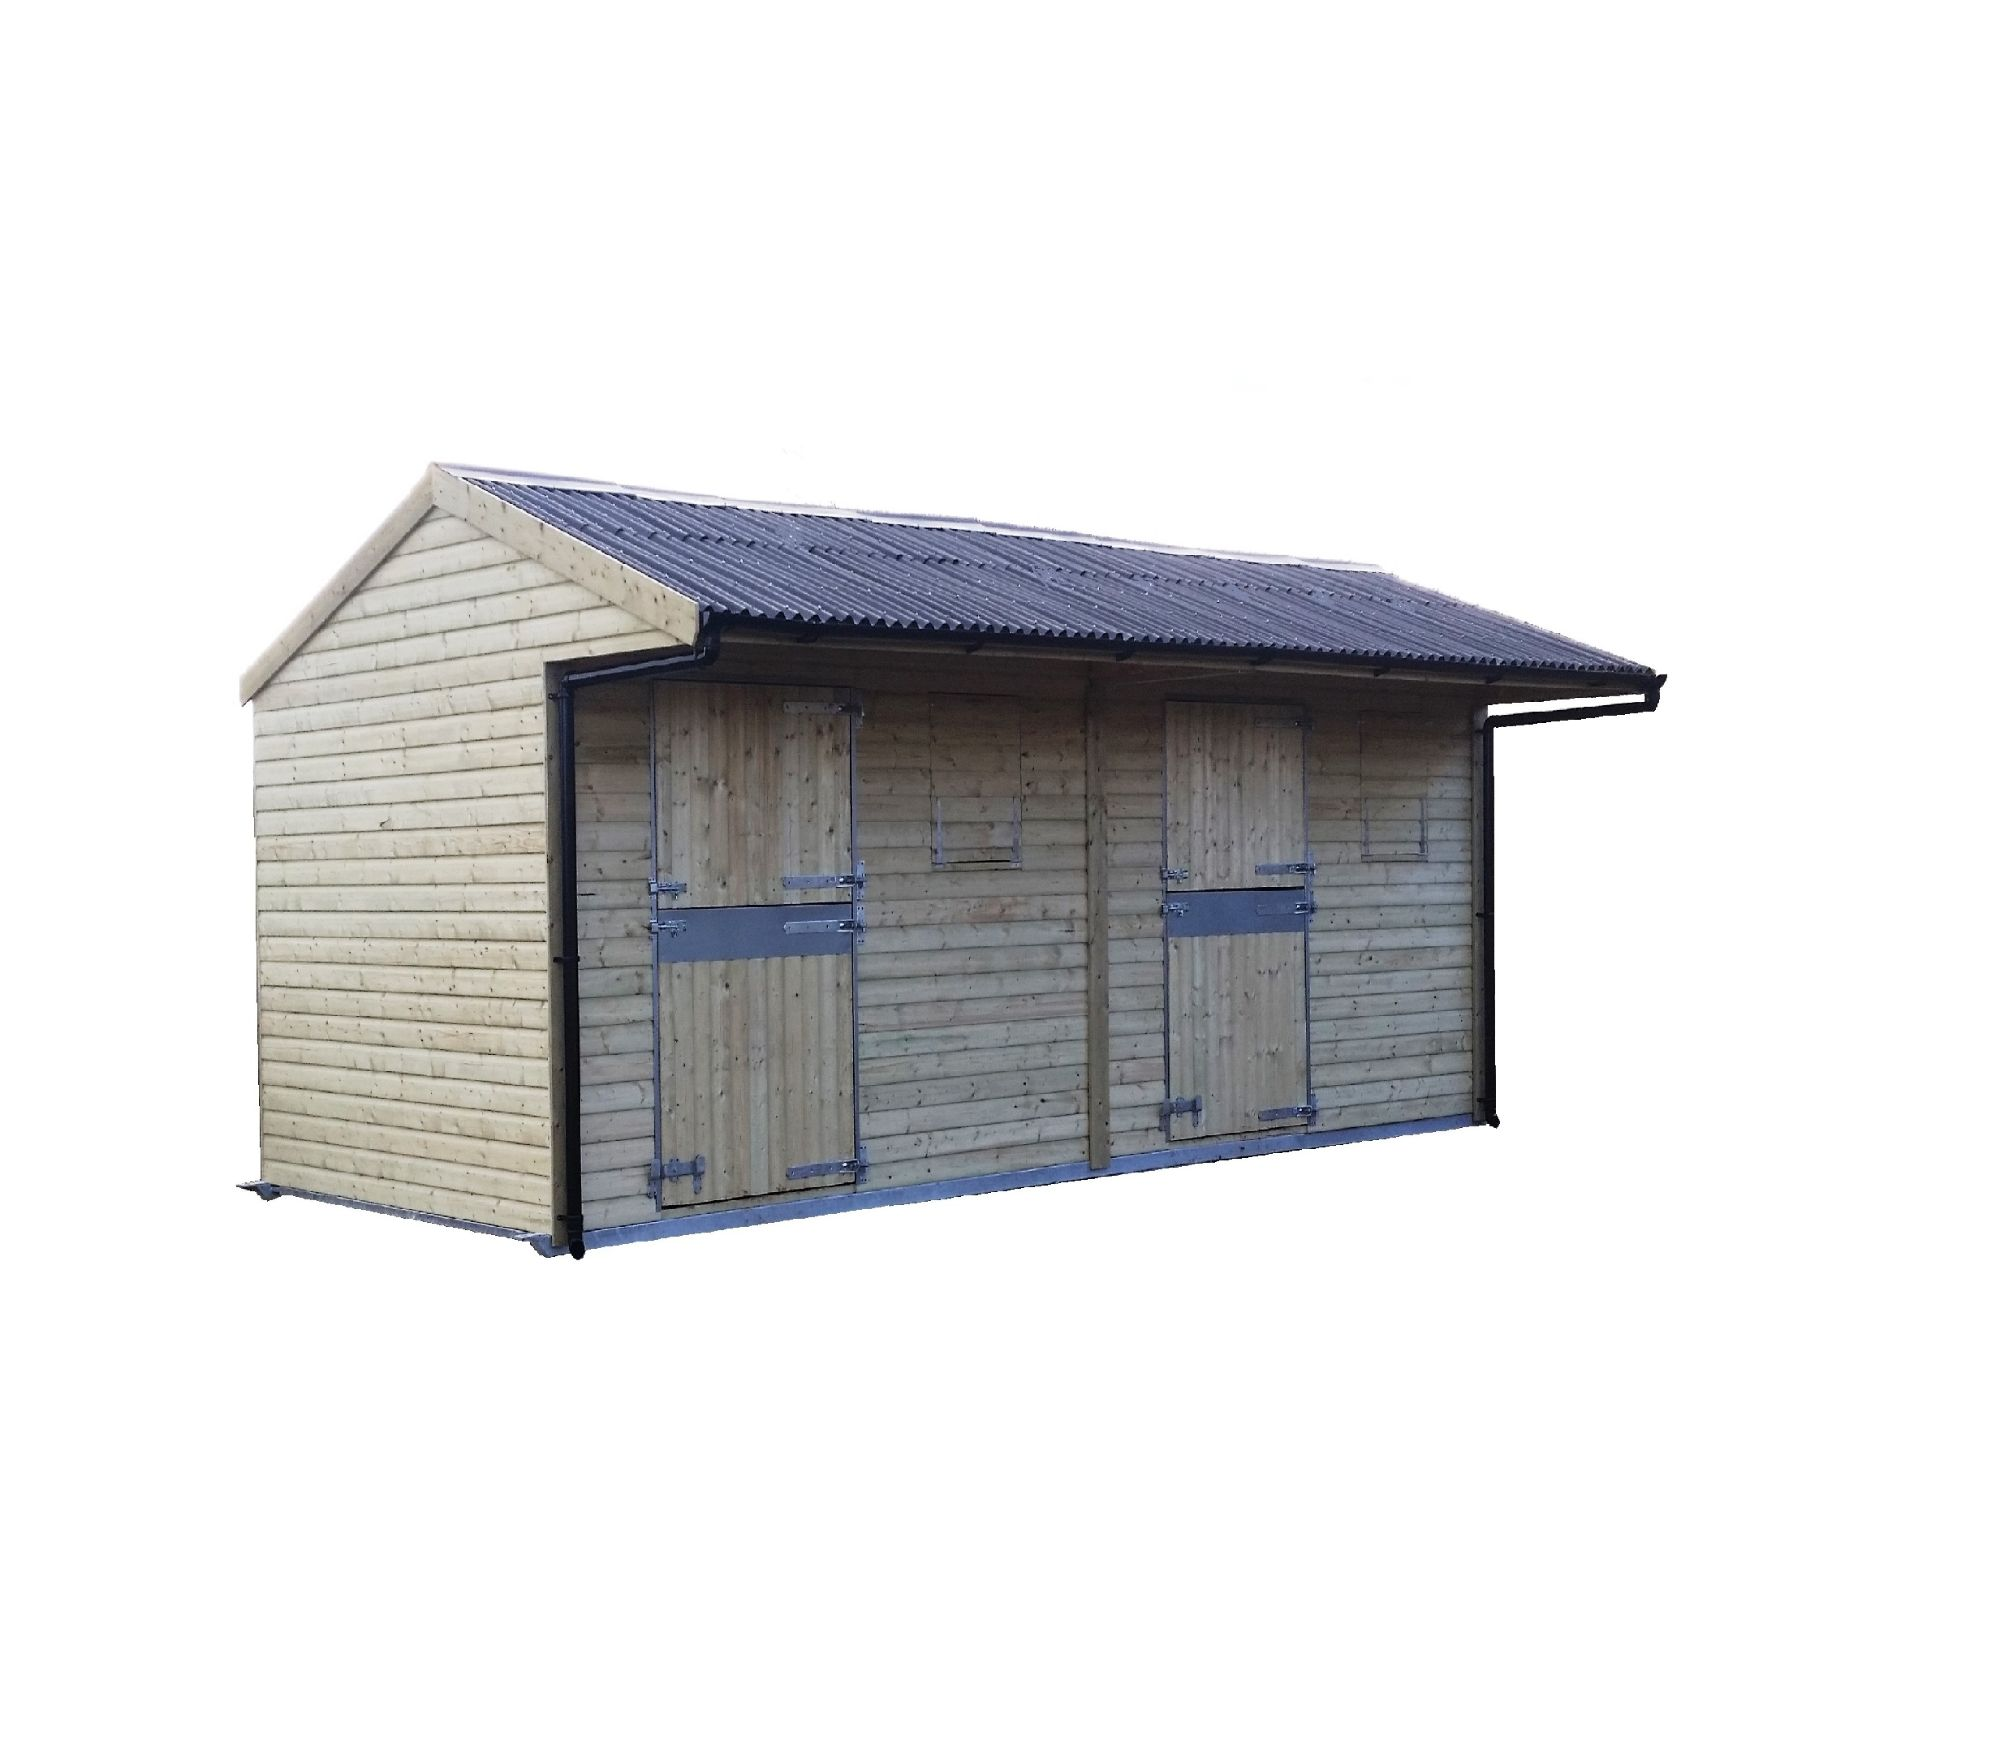 econo max double mobile shelter